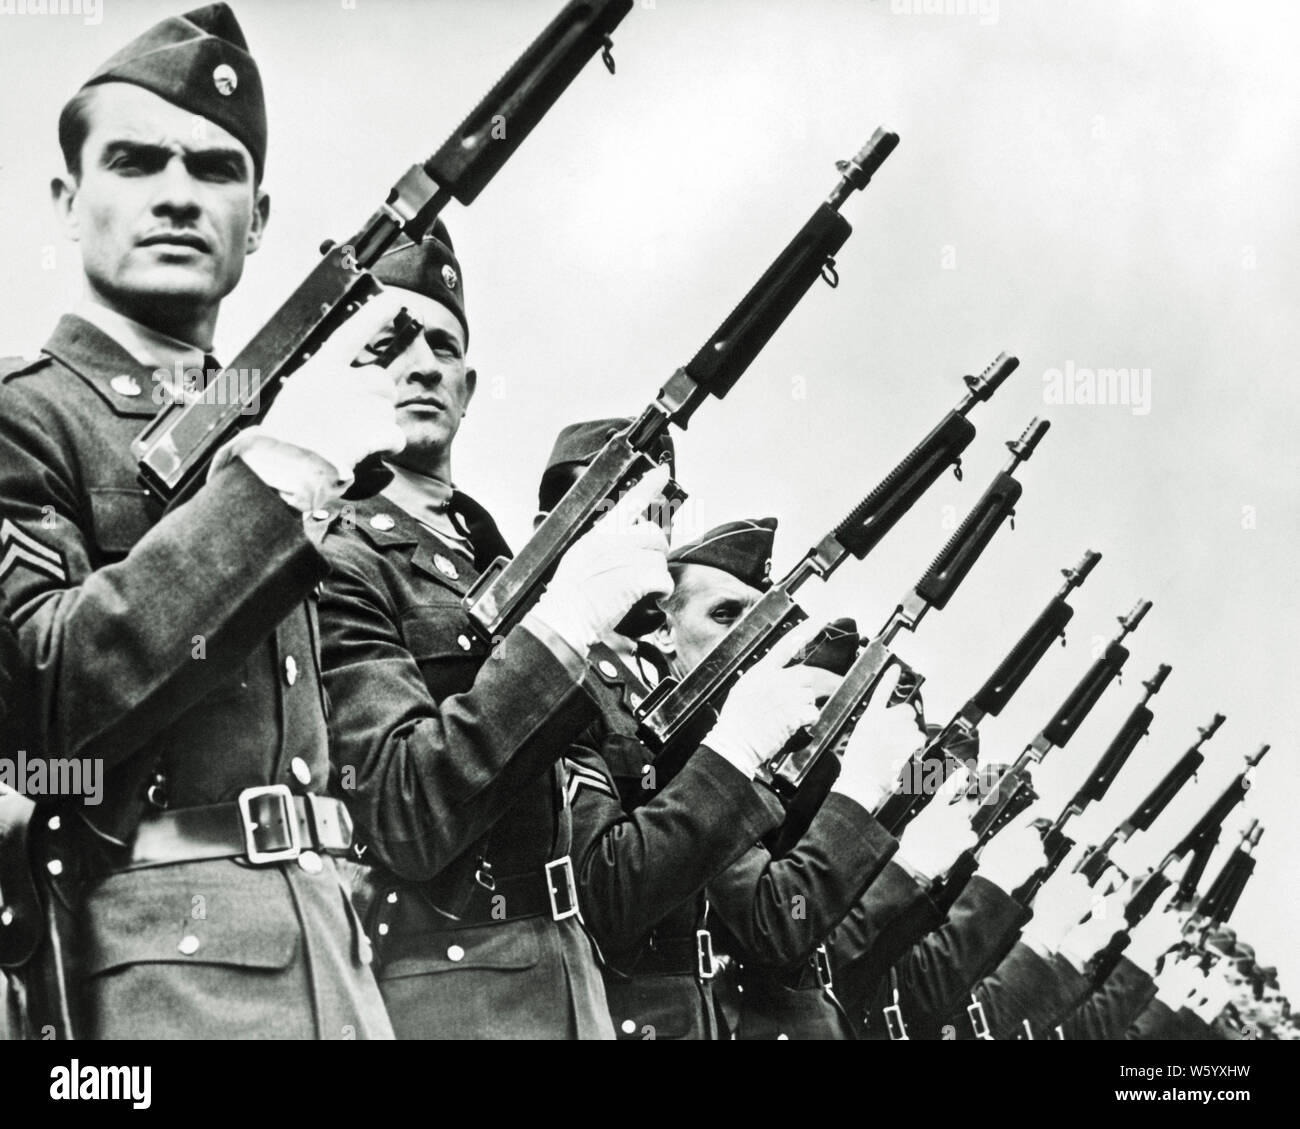 1930s 1940s FILE OF US ARMY SOLDIERS MILITARY POLICE WEARING WHITE GLOVES HOLDING THOMPSON 45 CALIBER SUBMACHINE GUNS AT READY - q74001 CPC001 HARS RISK CONFIDENCE EXPRESSIONS B&W EYE CONTACT FREEDOM FILE PROTECTION STRENGTH COURAGE POWERFUL STERN WORLD WARS WORLD WAR WORLD WAR TWO WORLD WAR II OF AUTHORITY OCCUPATIONS UNIFORMS CONCEPTUAL STYLISH WORLD WAR 2 US ARMY WHITE GLOVES FIREARM FIREARMS TOGETHERNESS YOUNG ADULT MAN BLACK AND WHITE CAUCASIAN ETHNICITY OLD FASHIONED Stock Photo